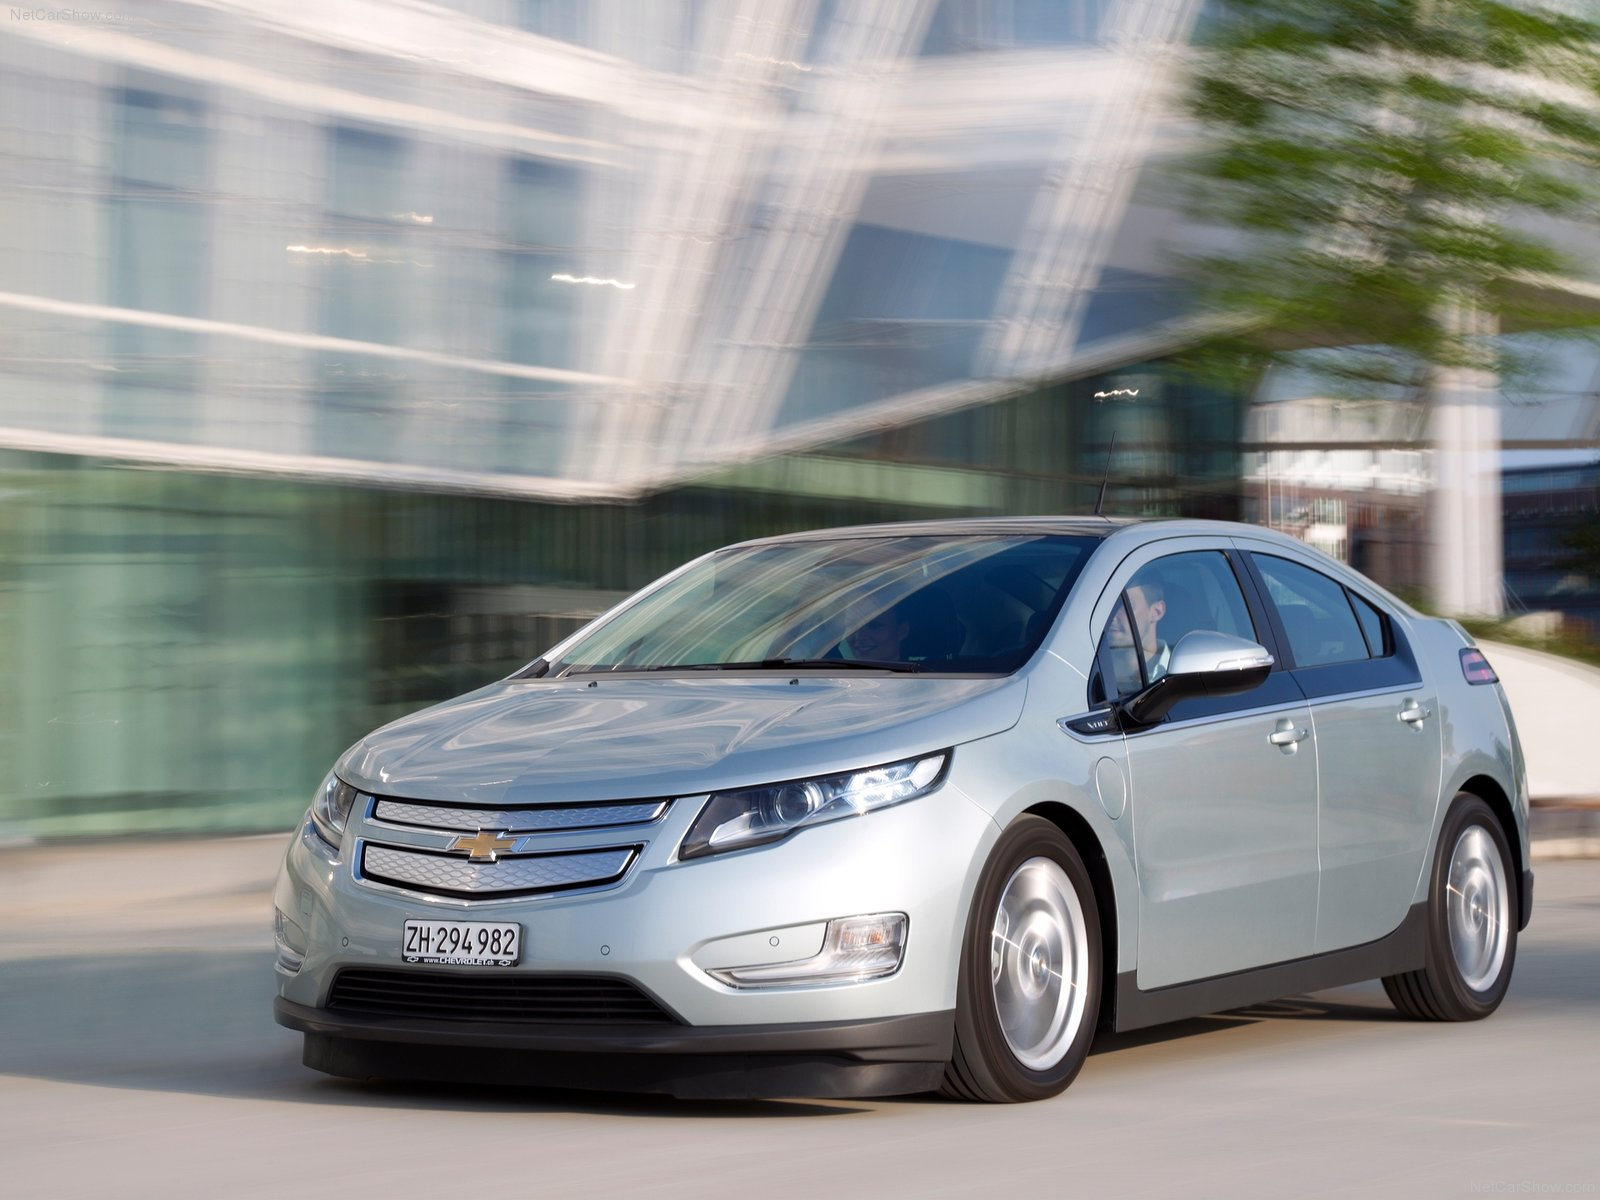 Chevrolet Volt 5 Door Hatchback 2012